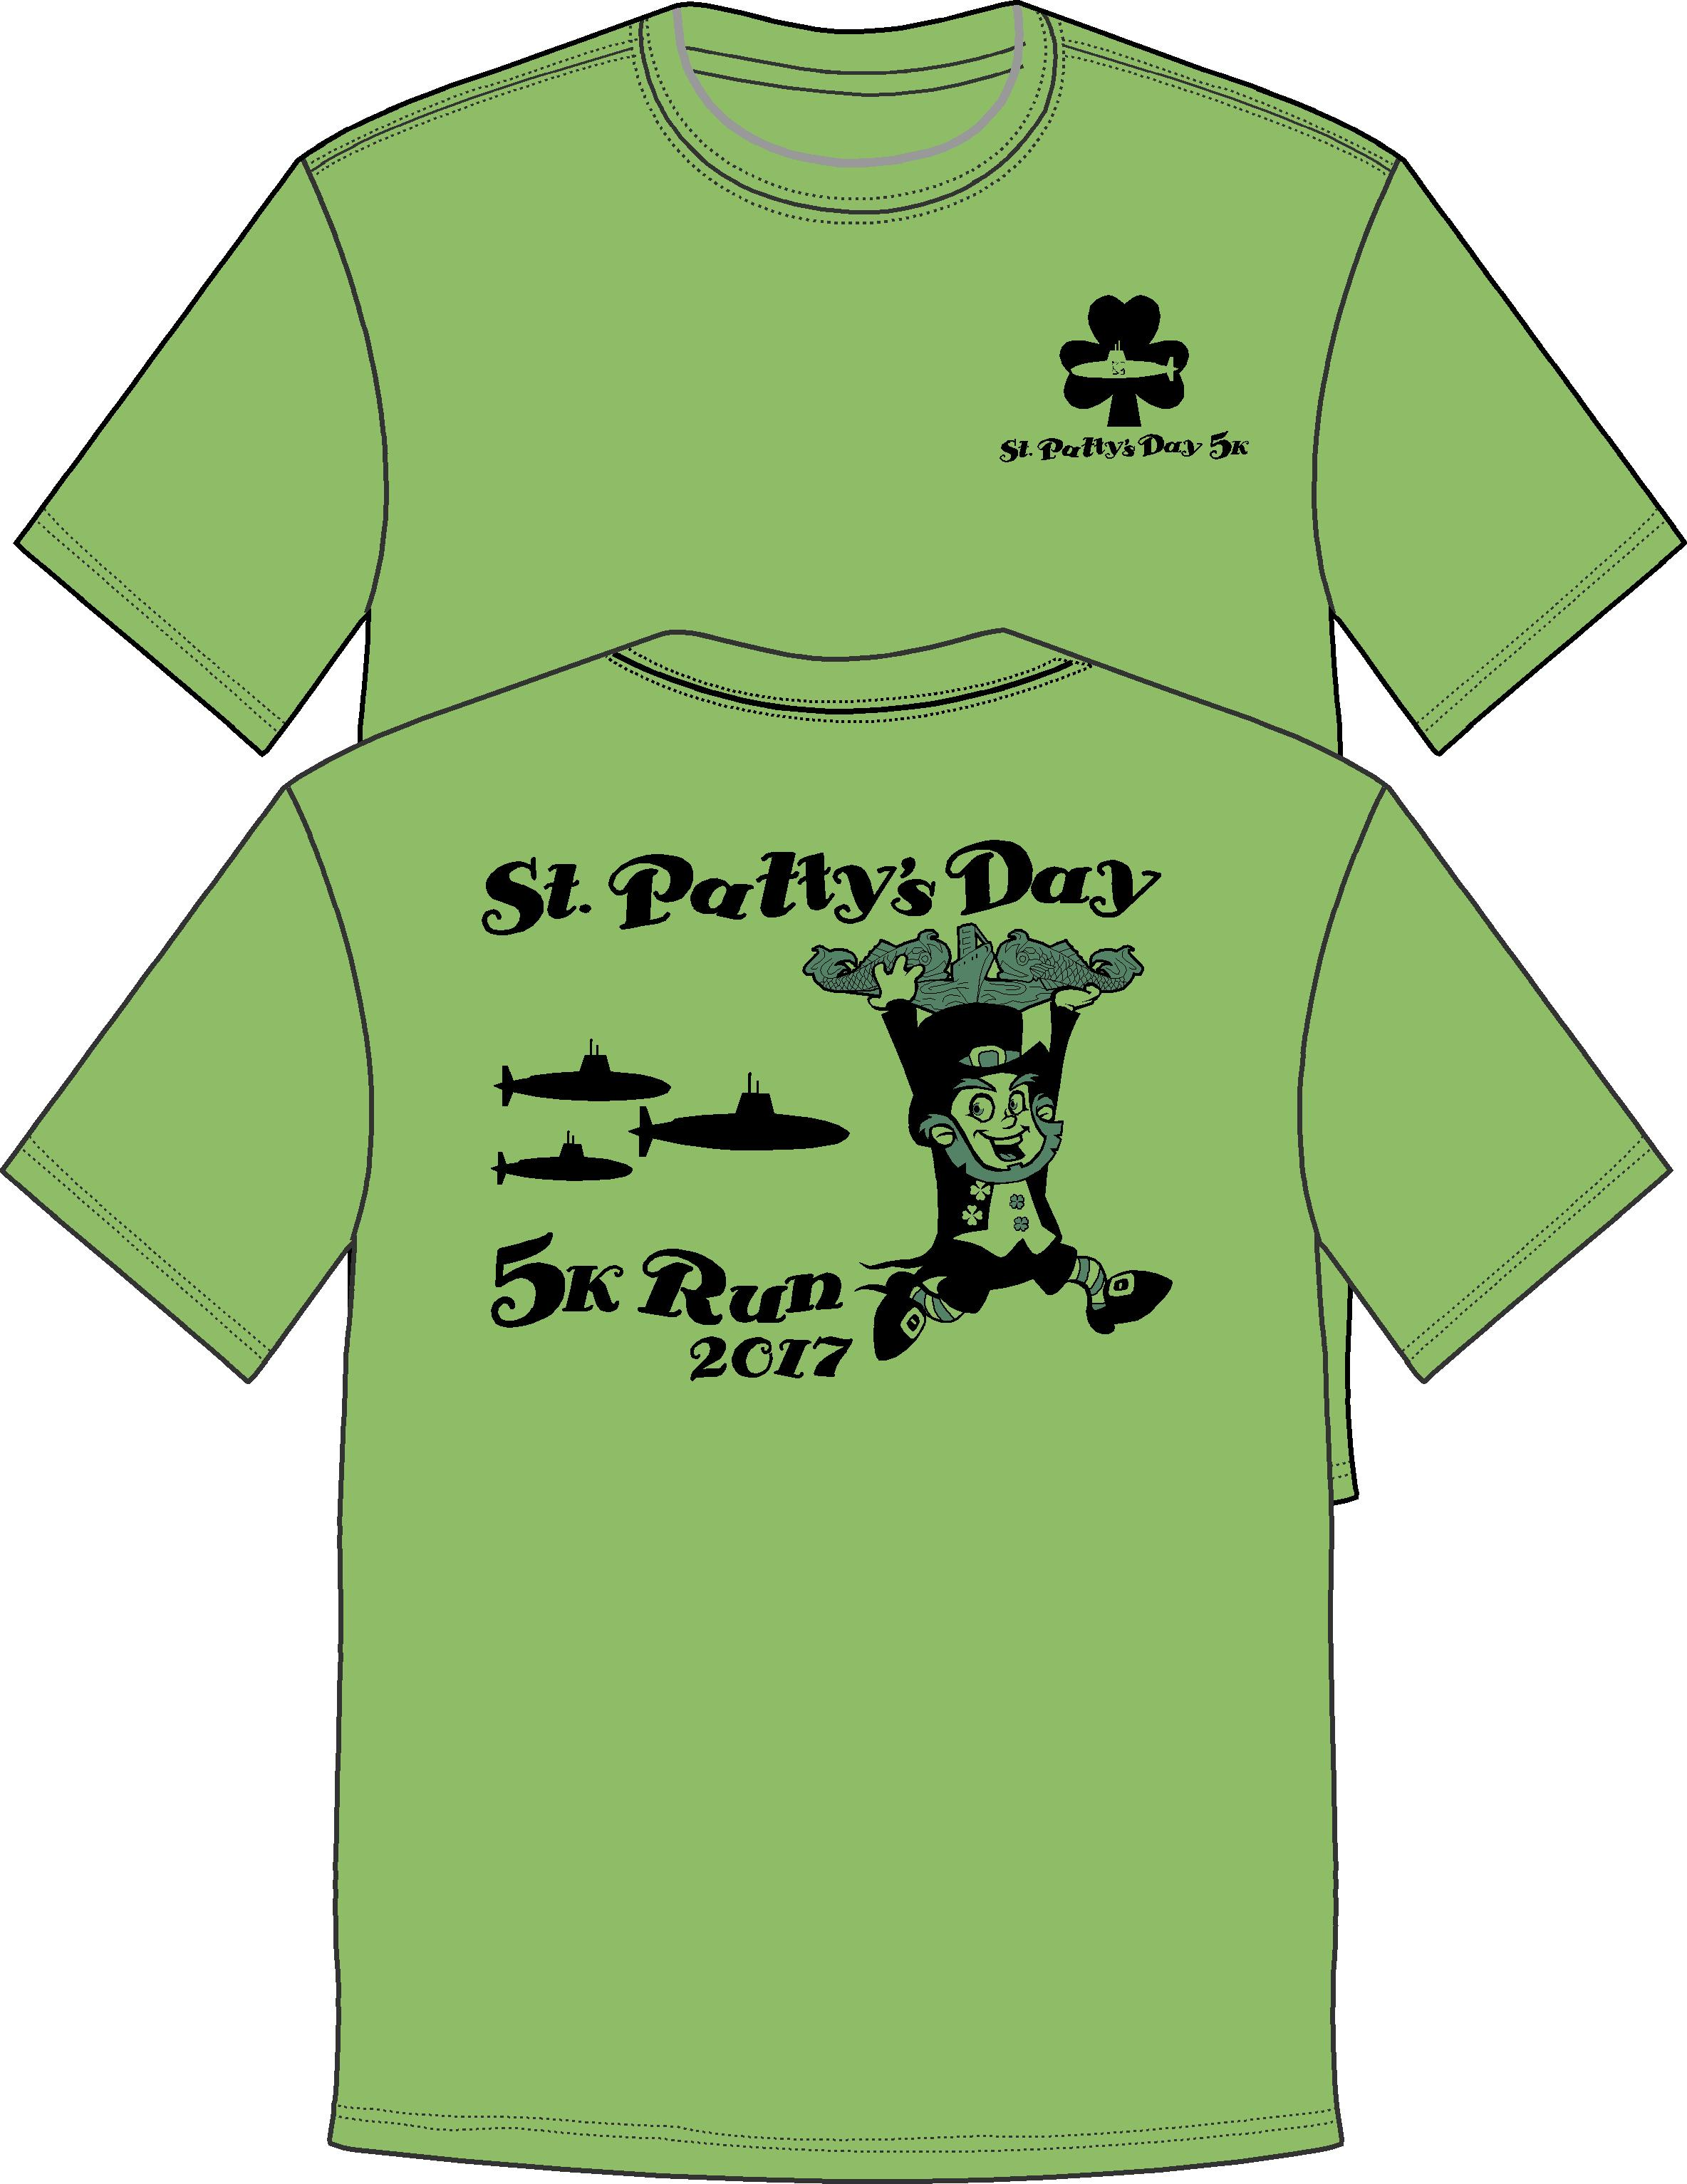 9th Annual St Patrick S Day 5k Fun Run At Ford Island